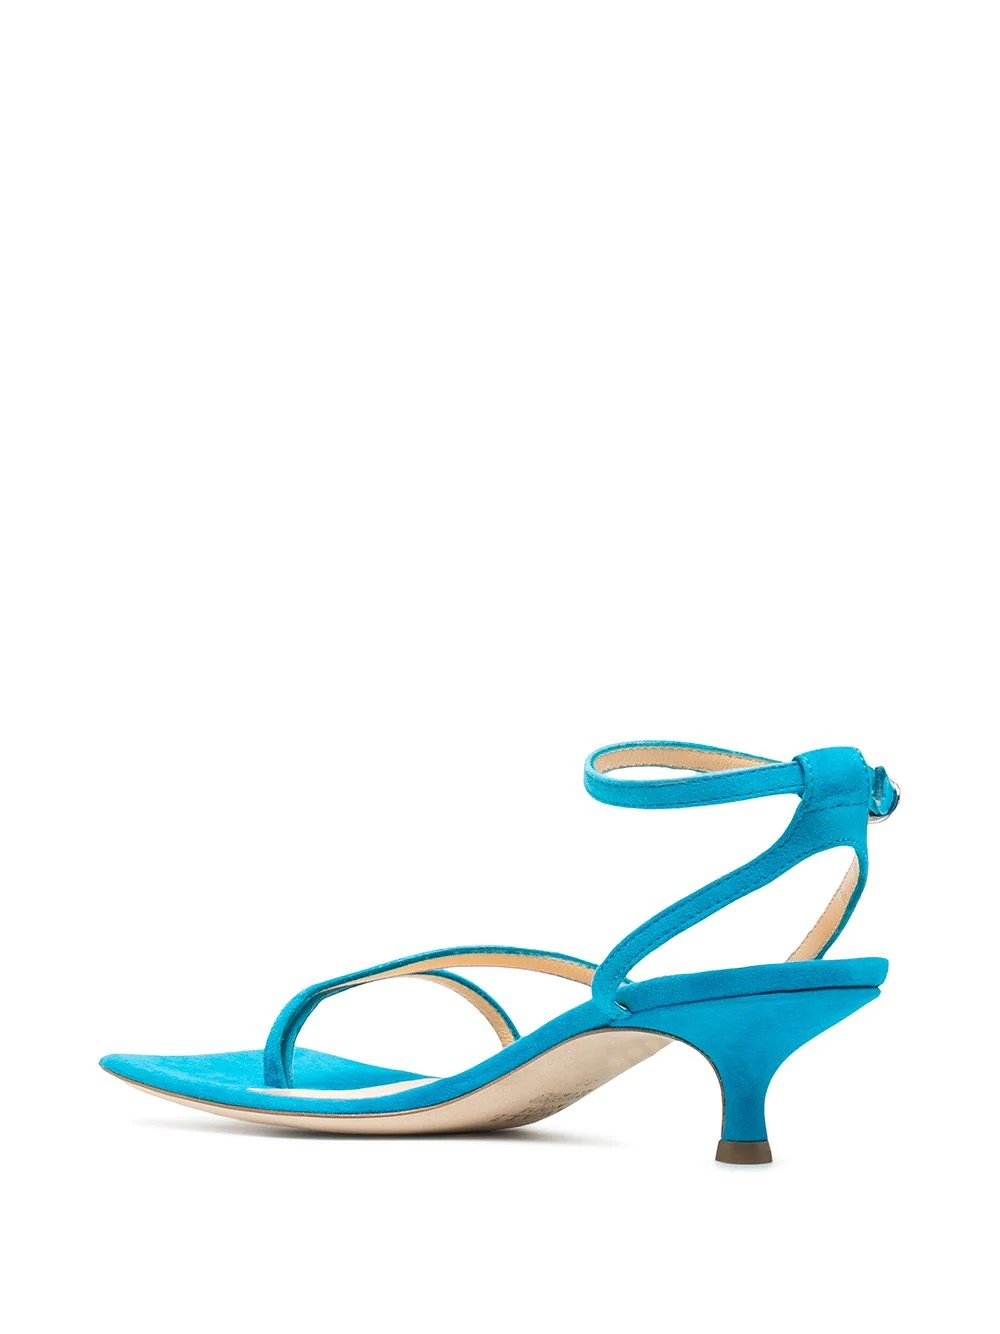 KITTEN HEEL ASYMMETRIC STRAPPY SANDALS